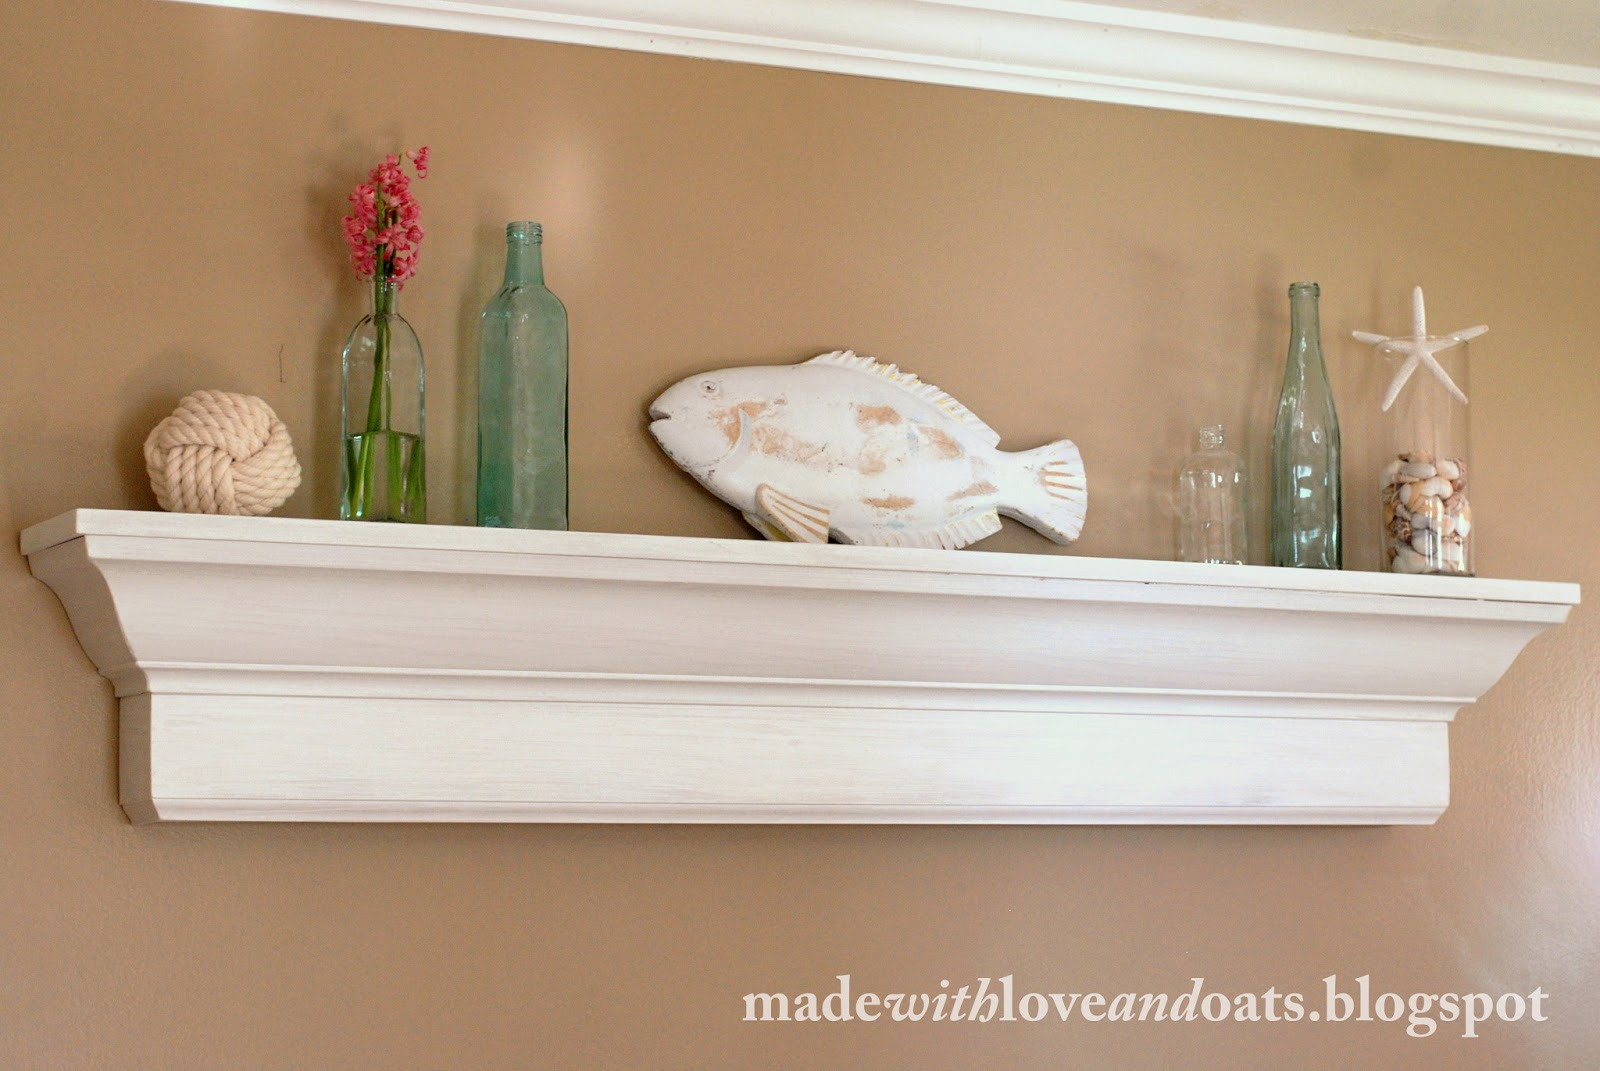 Pottery Barn Wall Shelves Made With Love And Oats Pottery Barn Knock Off Wooden Shelf